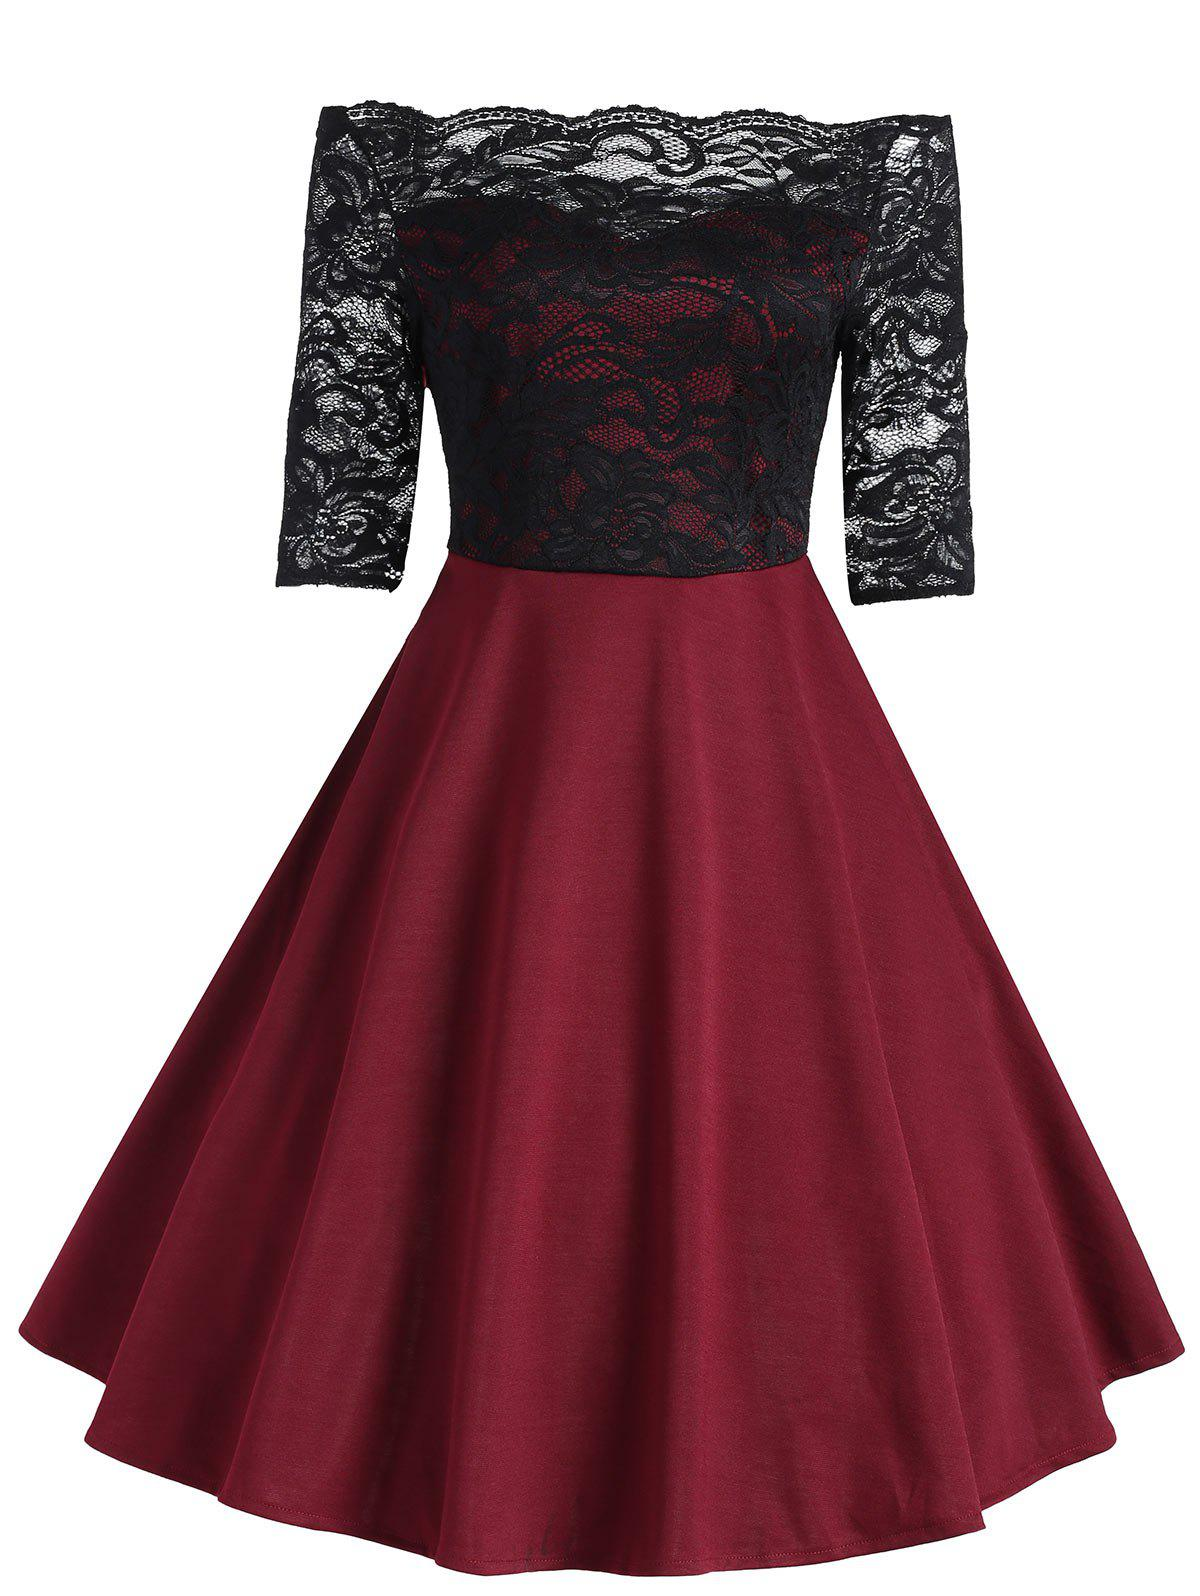 Vintage Lace Insert Off The Shoulder Dress - WINE RED L